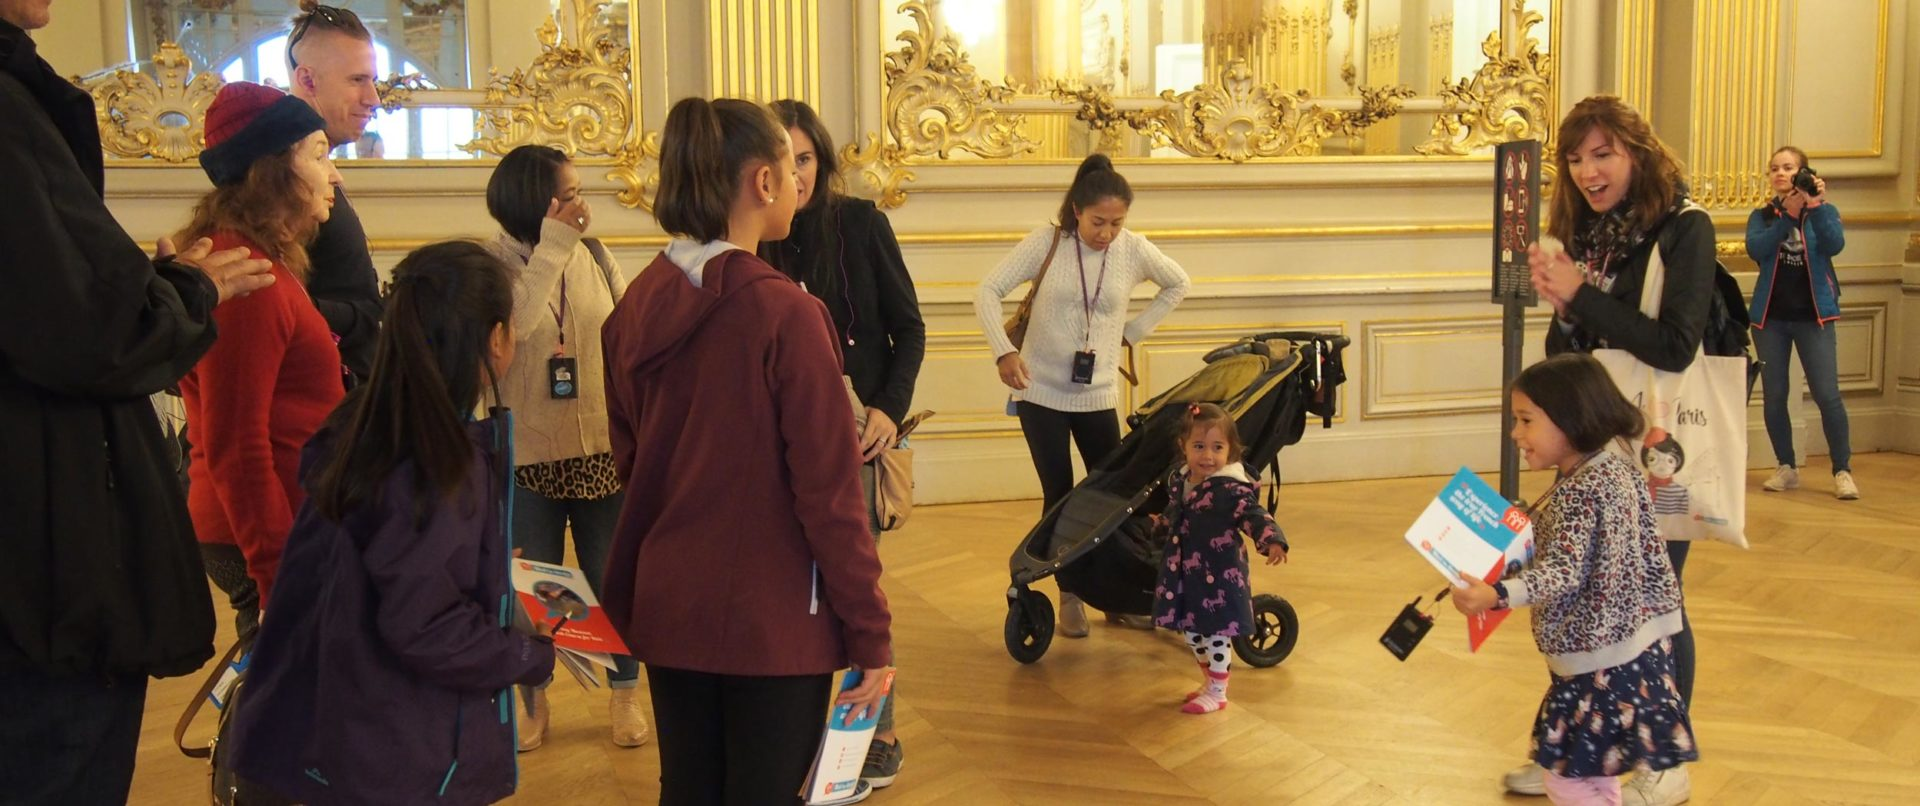 orsay-museum-family-experience